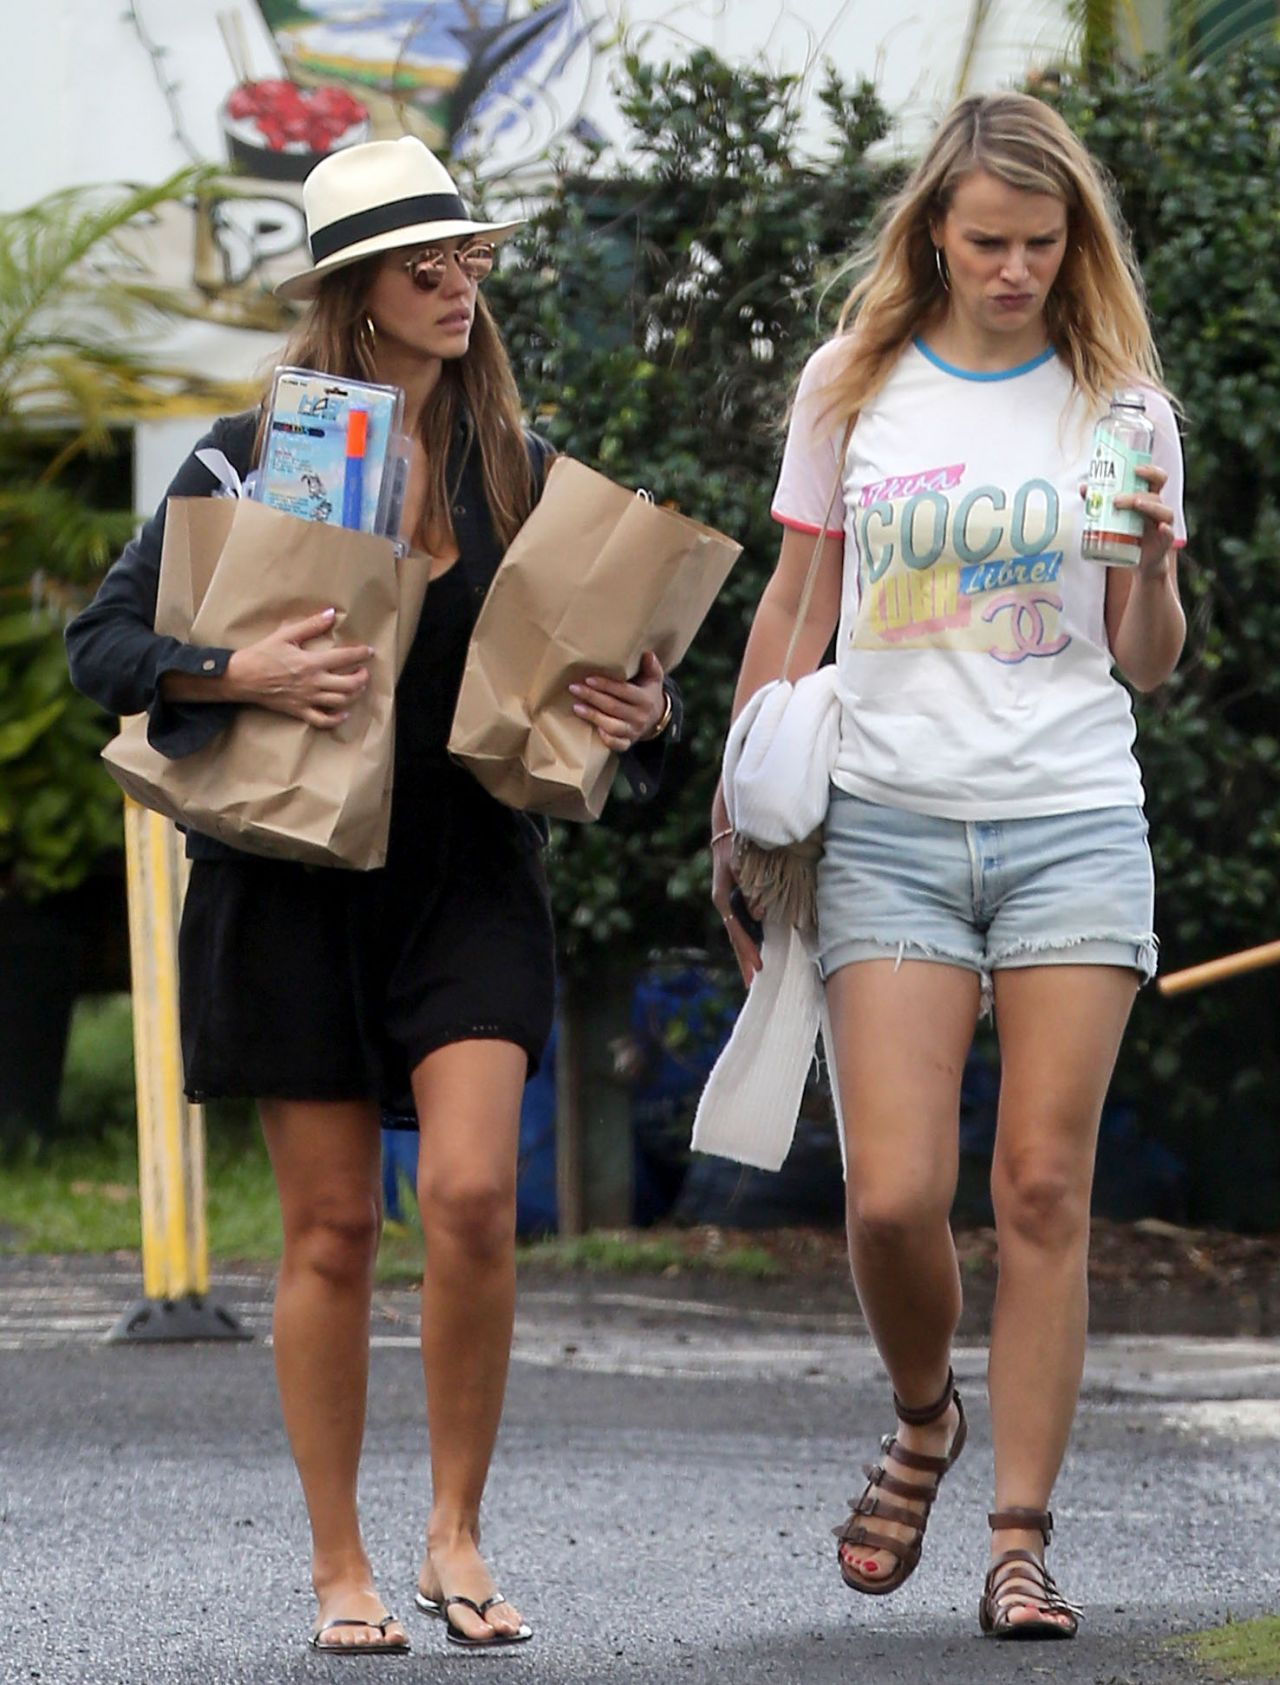 http://celebmafia.com/wp-content/uploads/2016/12/jessica-alba-street-style-grocery-shopping-in-hawaii-12-28-2016-2.jpg